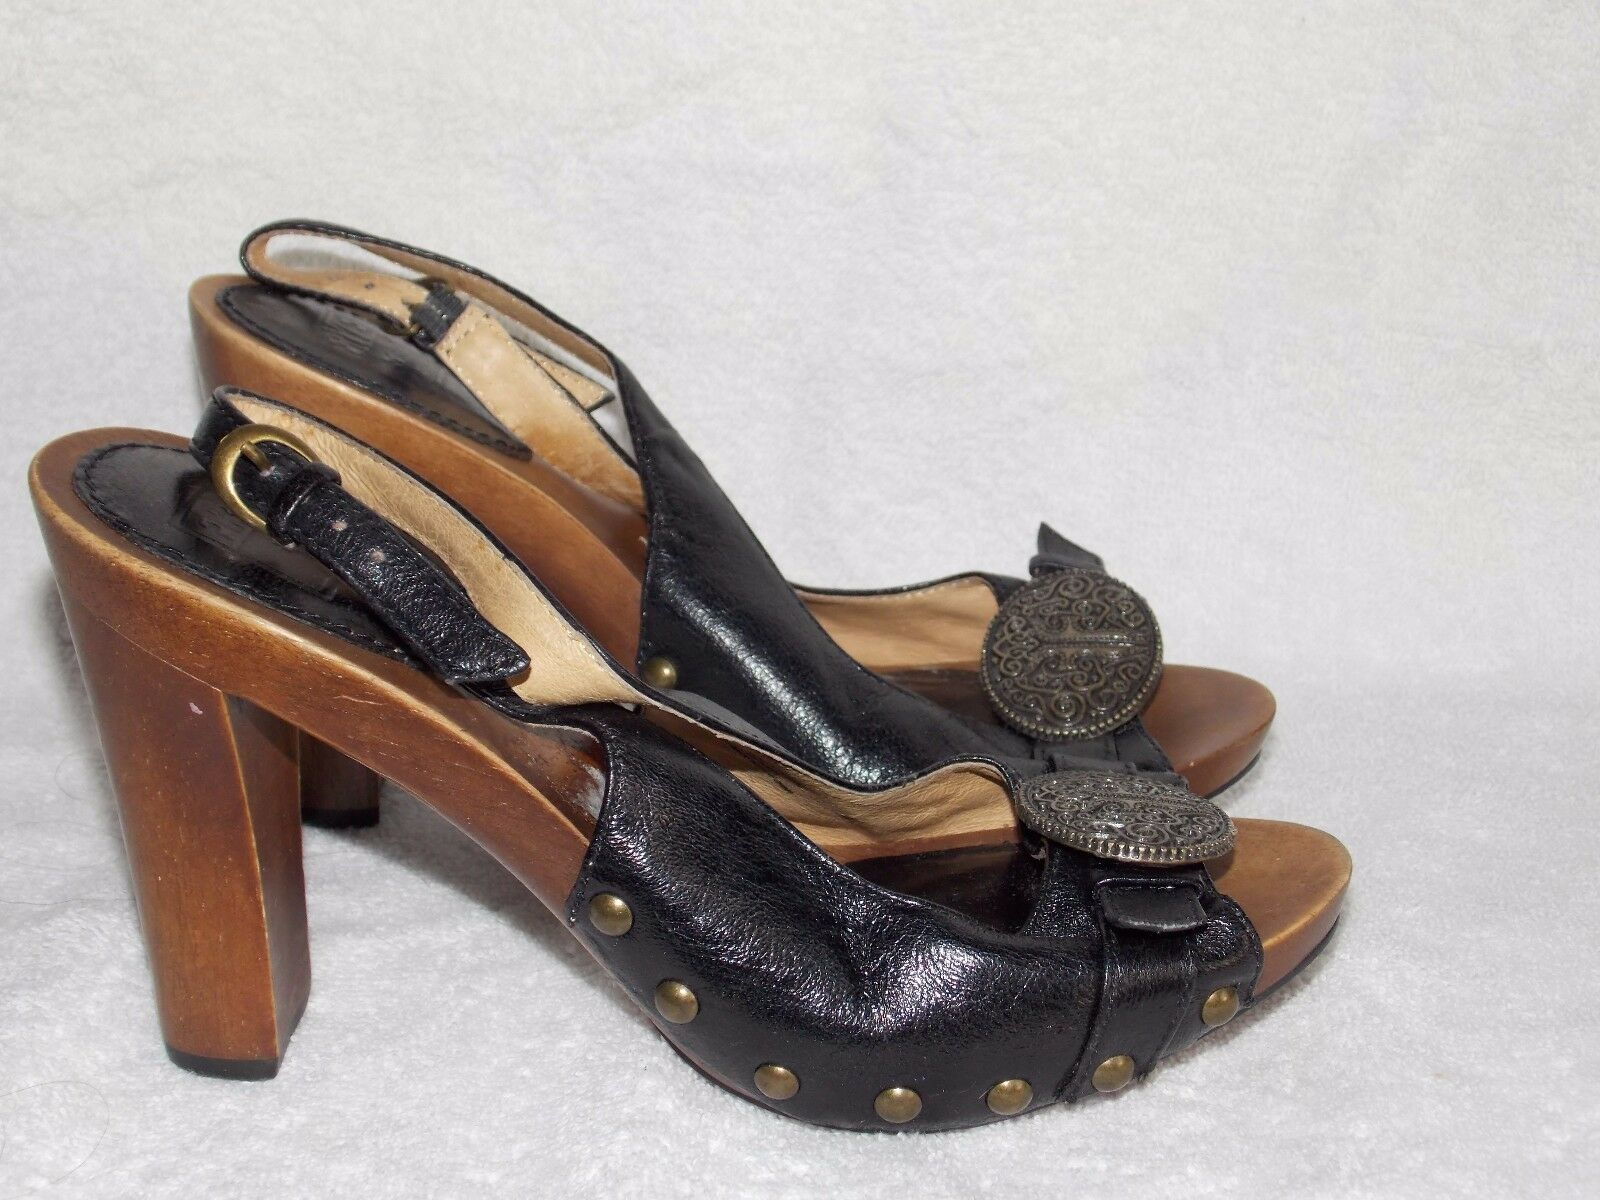 Frye nero Leather DOLLY METAL Sling Peep Toe Heels 5.5M For donna Used